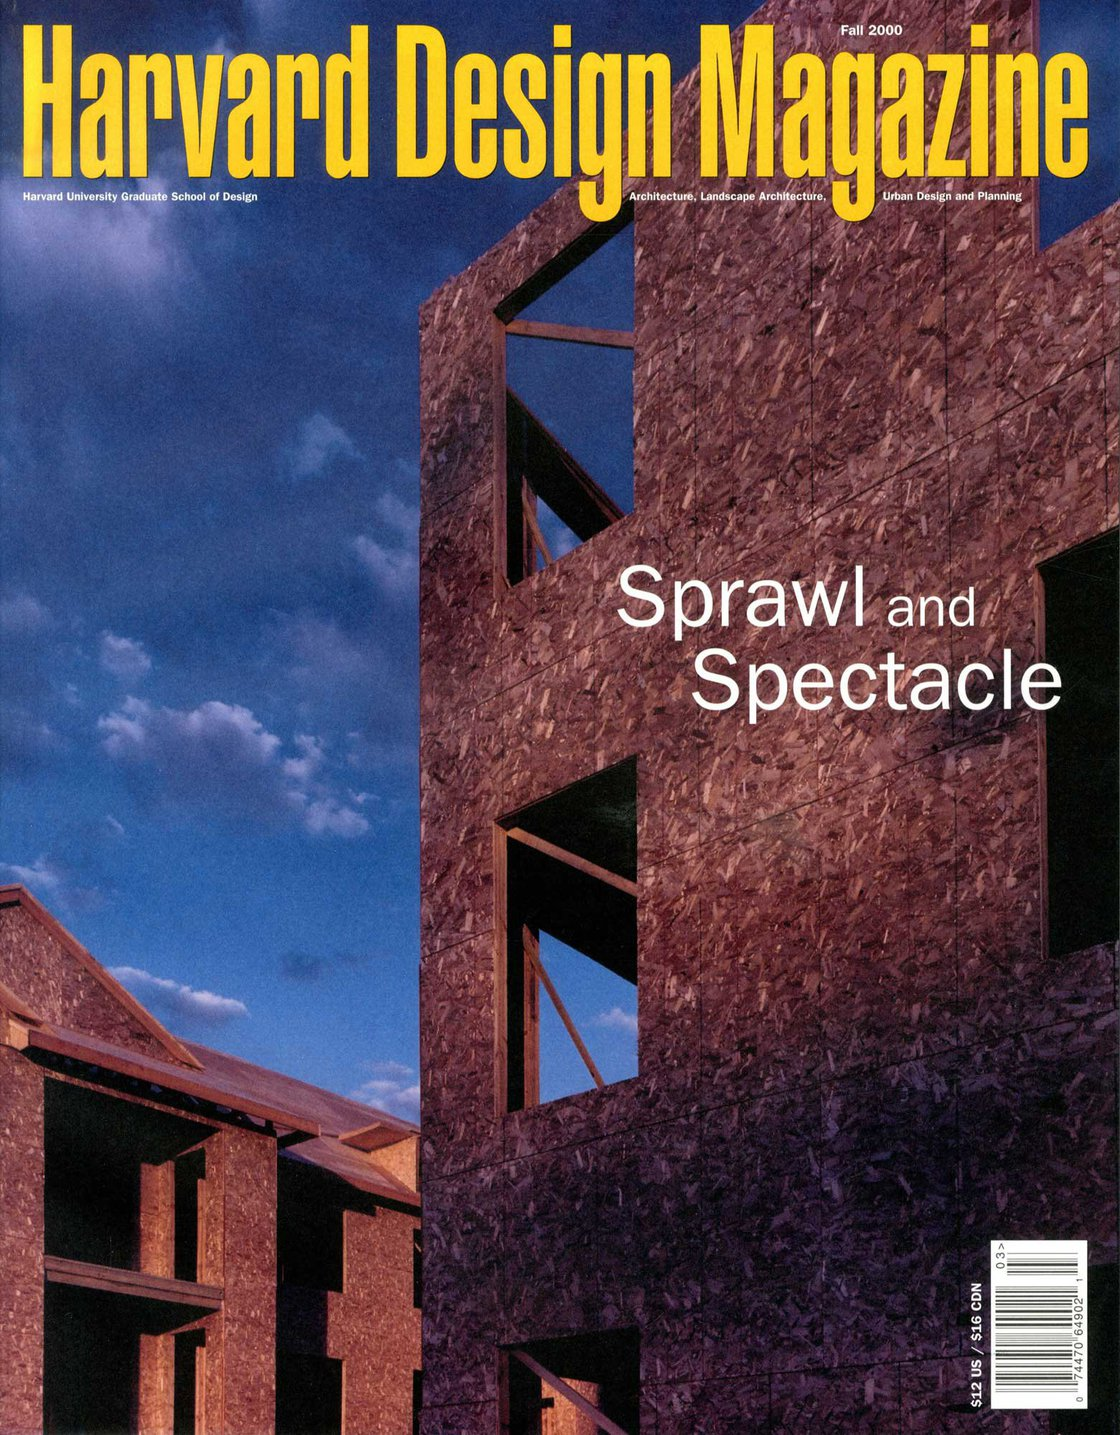 No. 12, Fall 2000 Sprawl and Spectacle